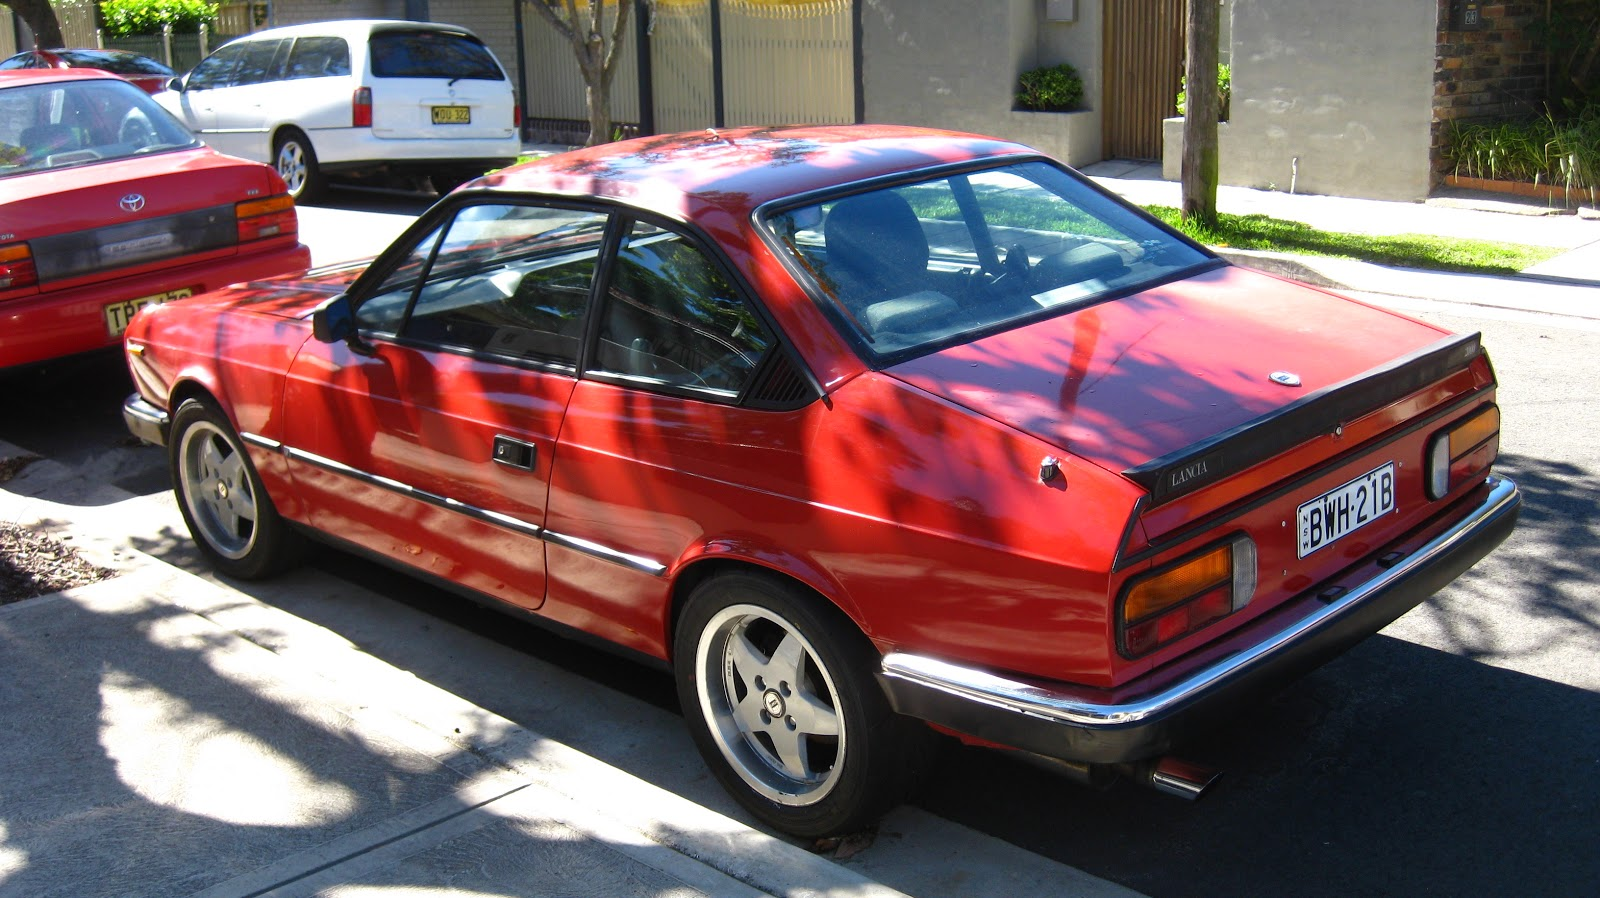 Aussie Old Parked Cars  1984 Lancia Beta 2000 Coupe